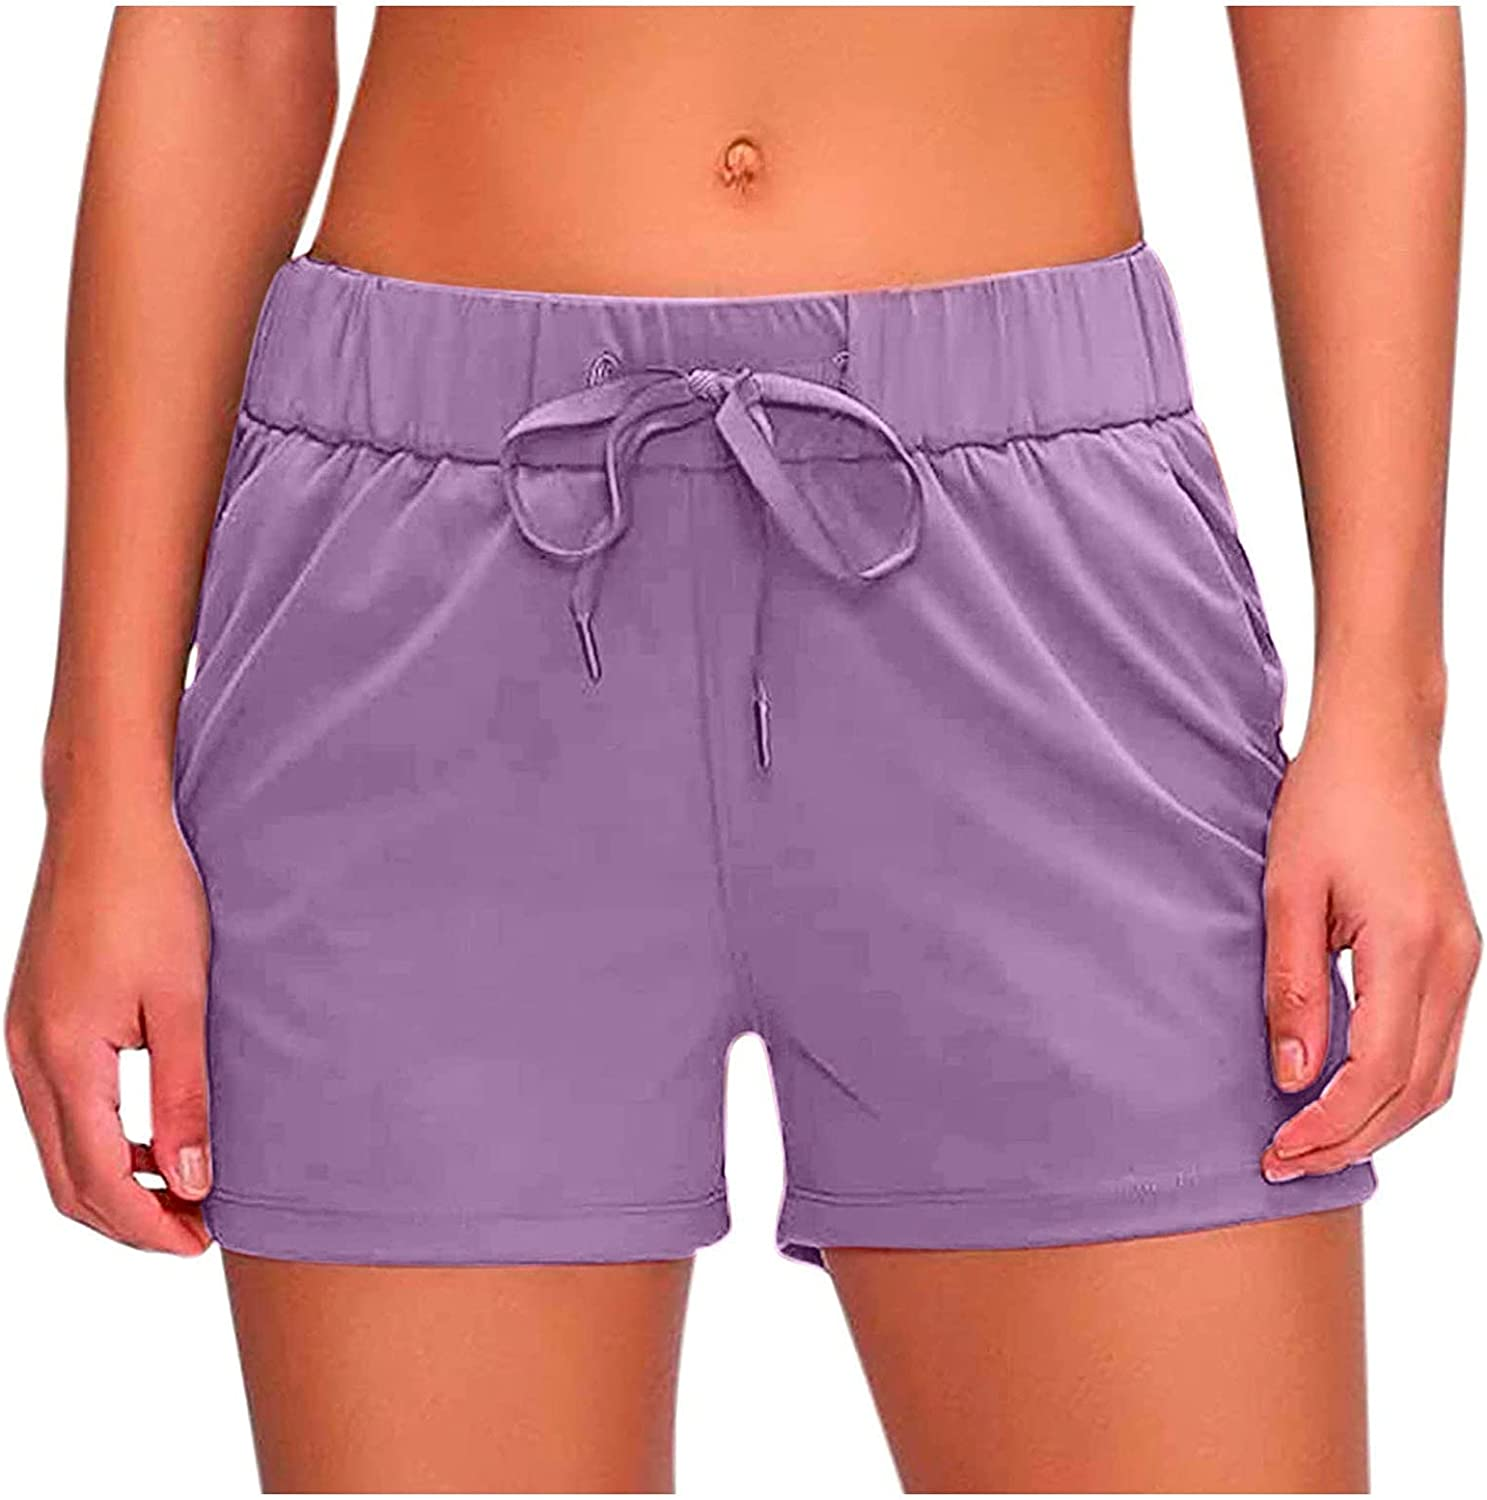 Smooto Quick-Dry Running Shorts Layer Elastic Waist Workout Shorts with Pockets